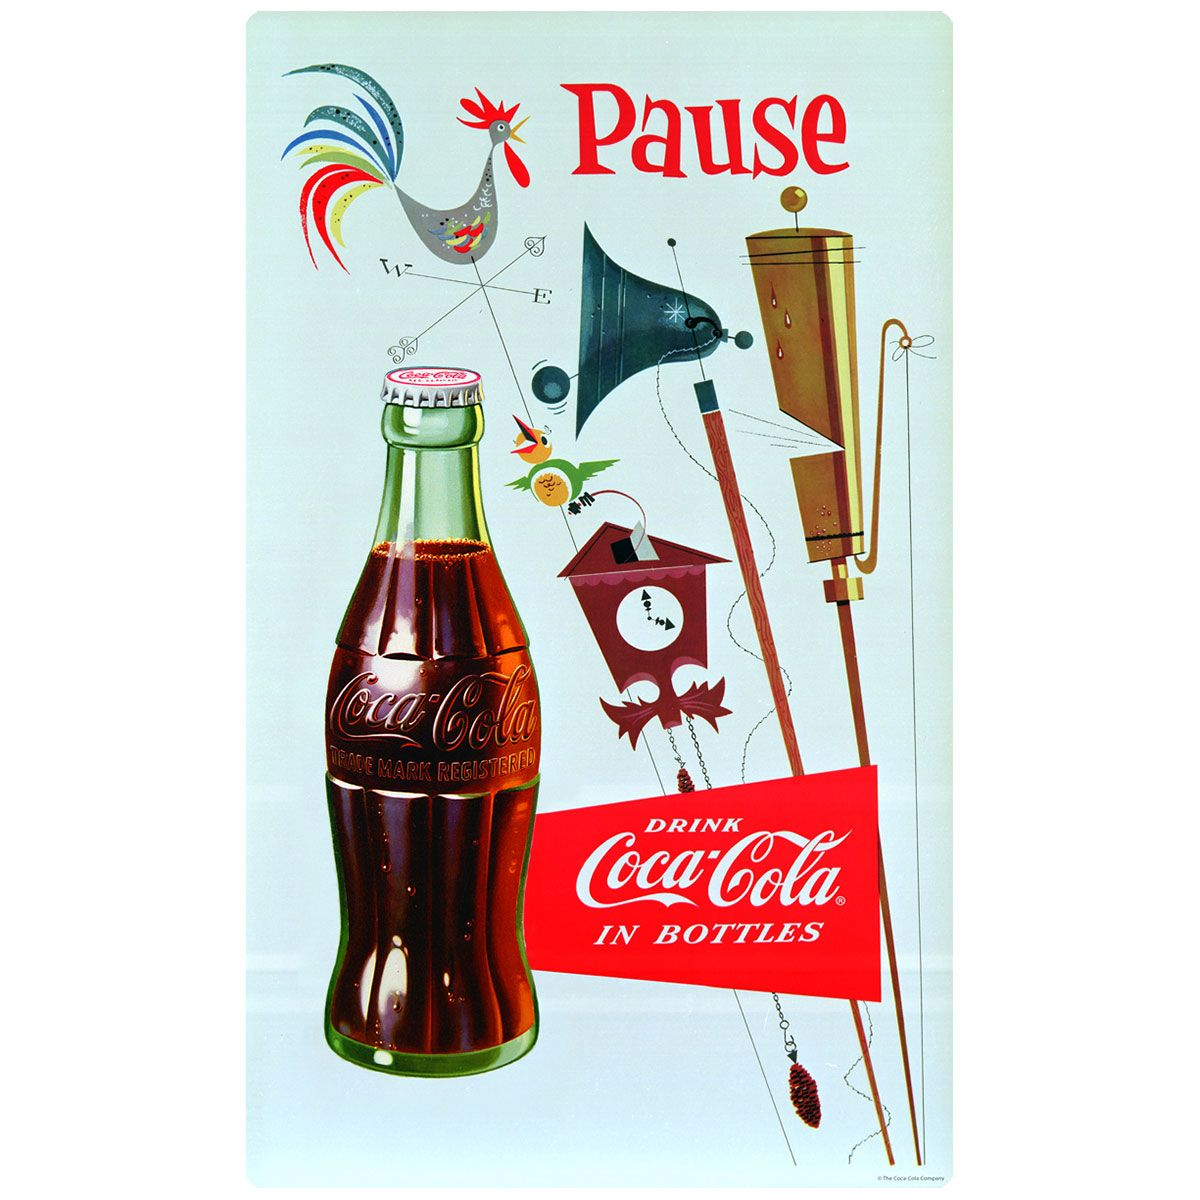 Cocacola pause country weathervane wall decal coke stickers